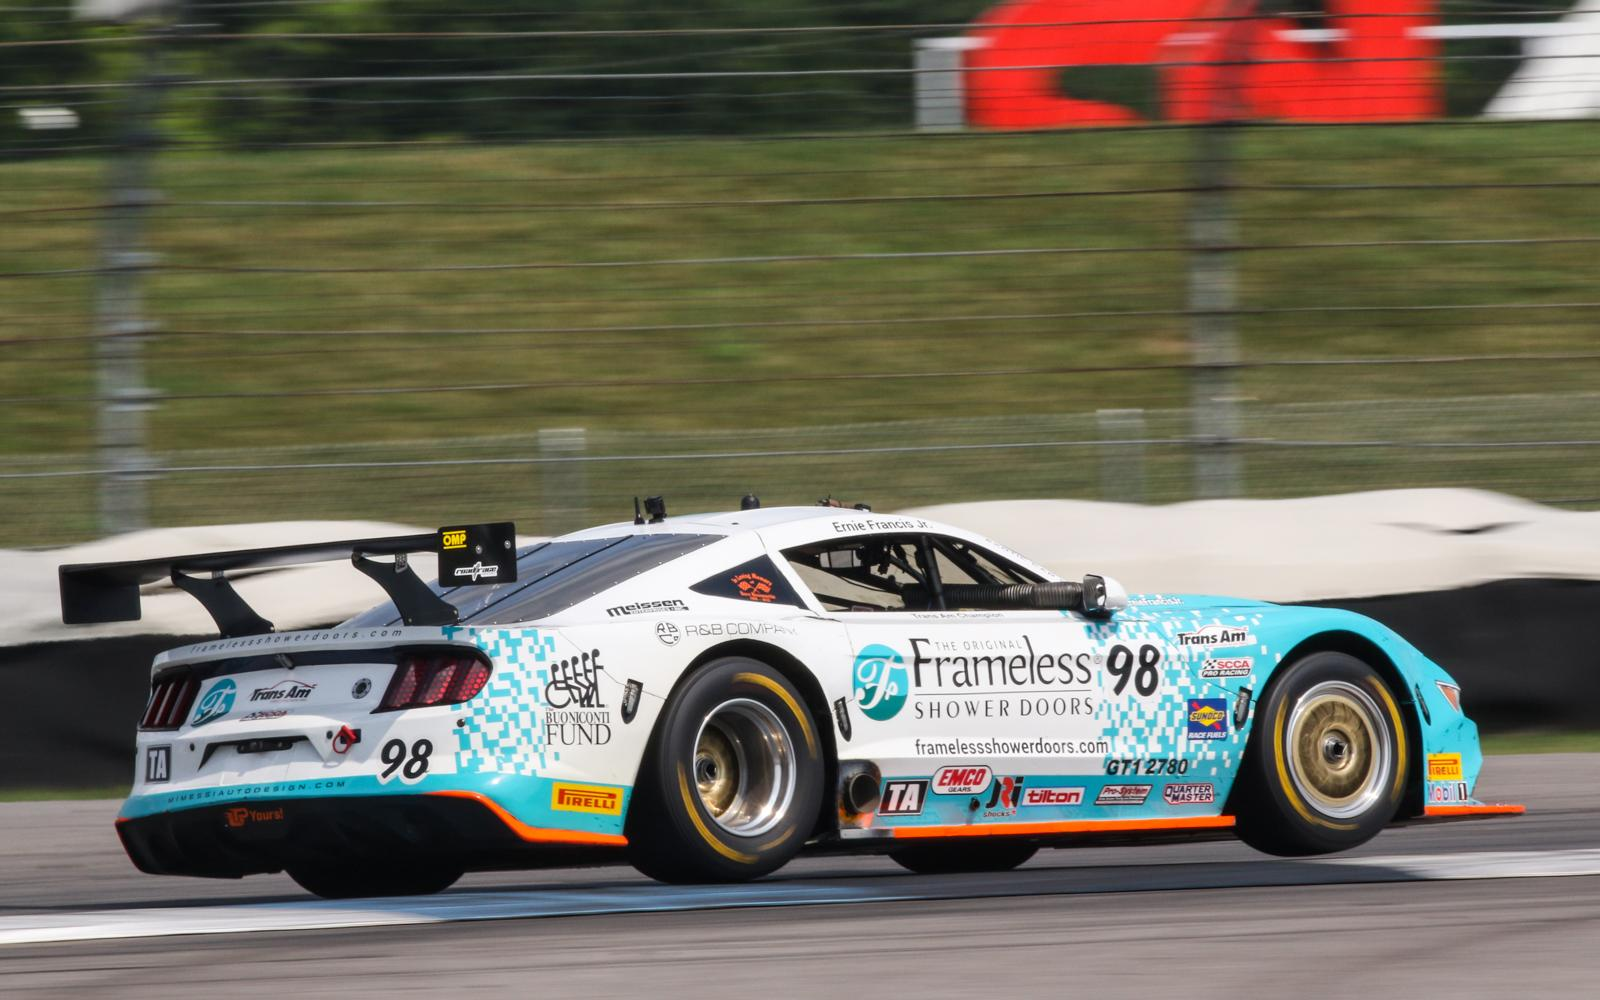 Ernie Francis, Jr., Drives to the Front for Trans Am Indy Win